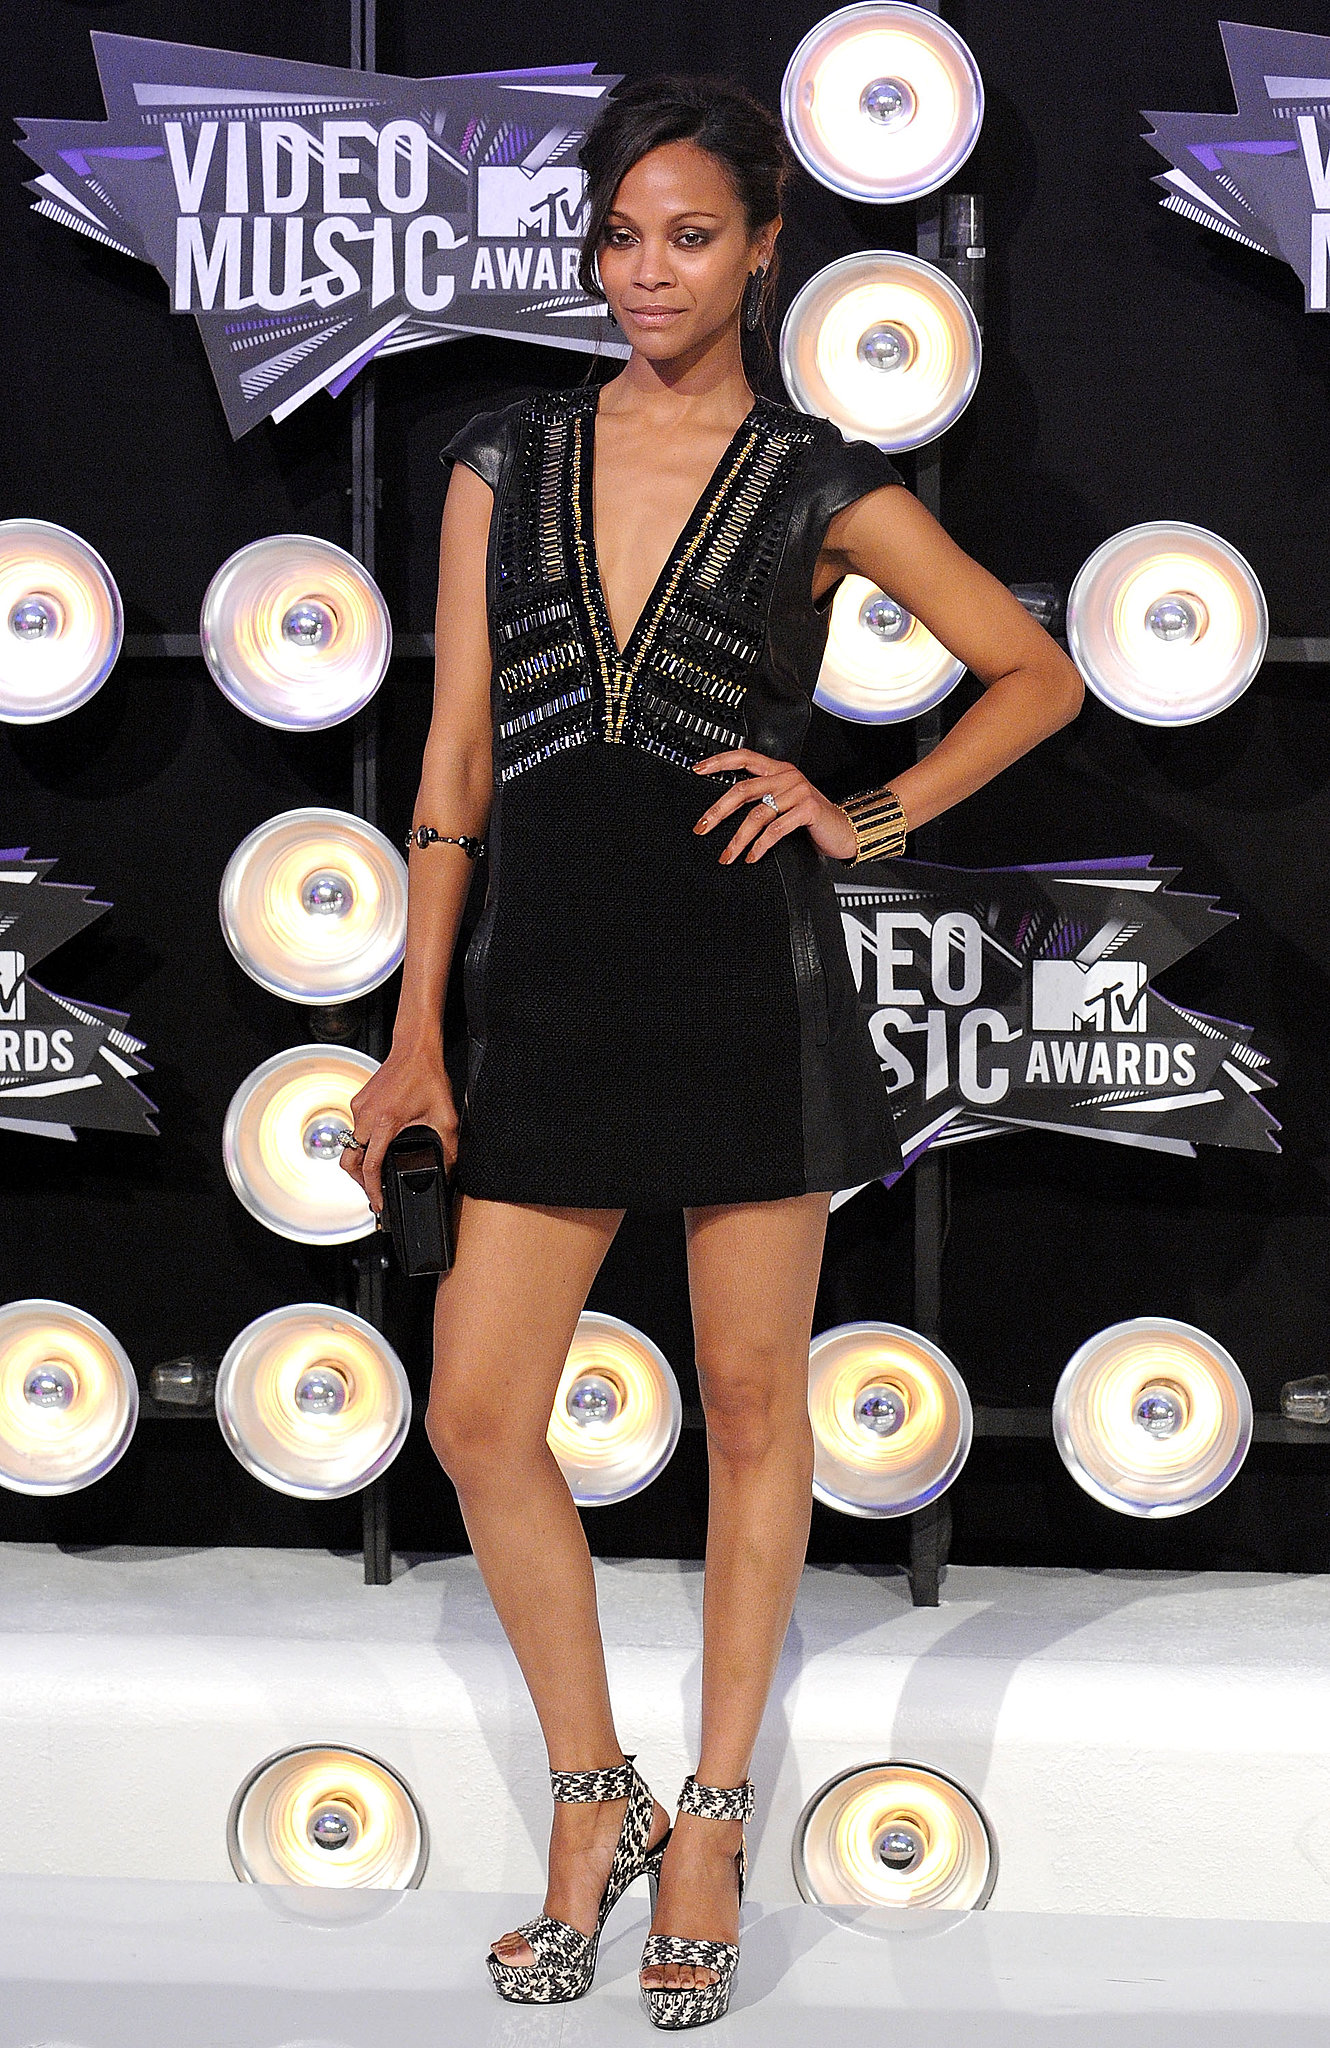 She wore a sexy and superexotic head-to-toe ensemble by Barbara Bui to the 2011 MTV Video Music Awards.